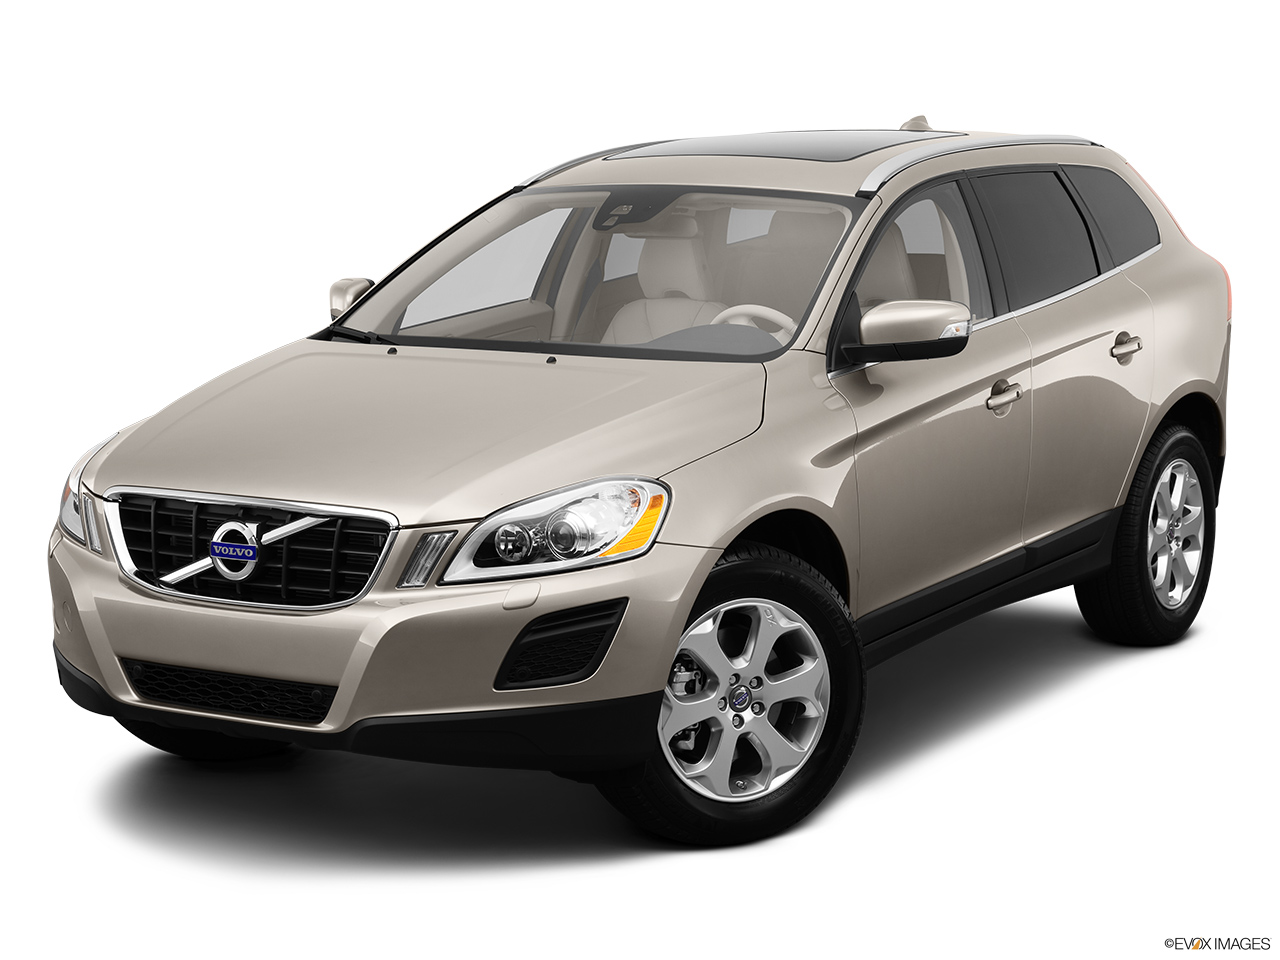 2013 Volvo XC60 3.2 FWD Premier Plus Front angle view.